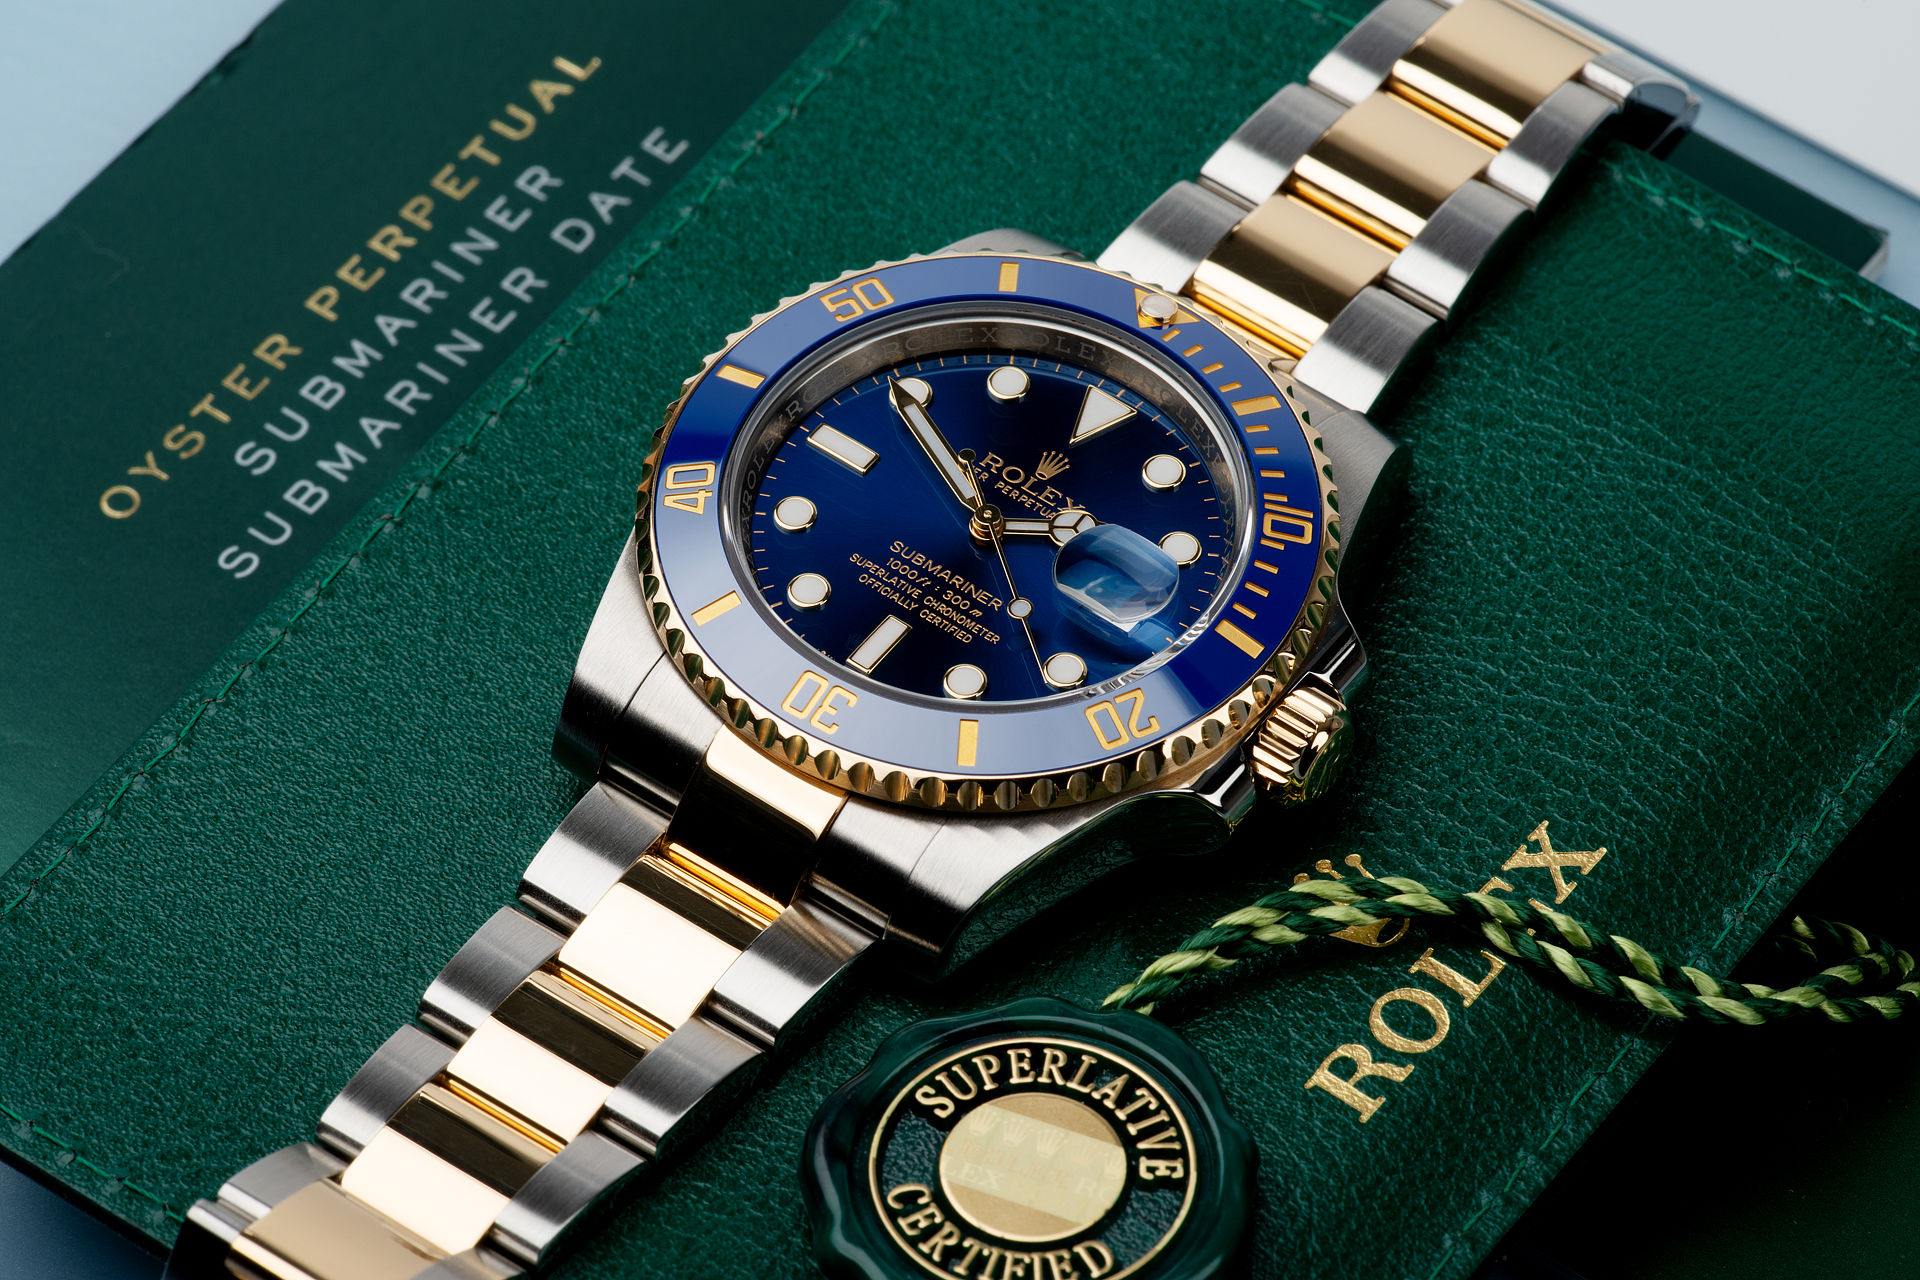 ref 116613LB | Gold & Steel 'Full Set' | Rolex Submariner Date